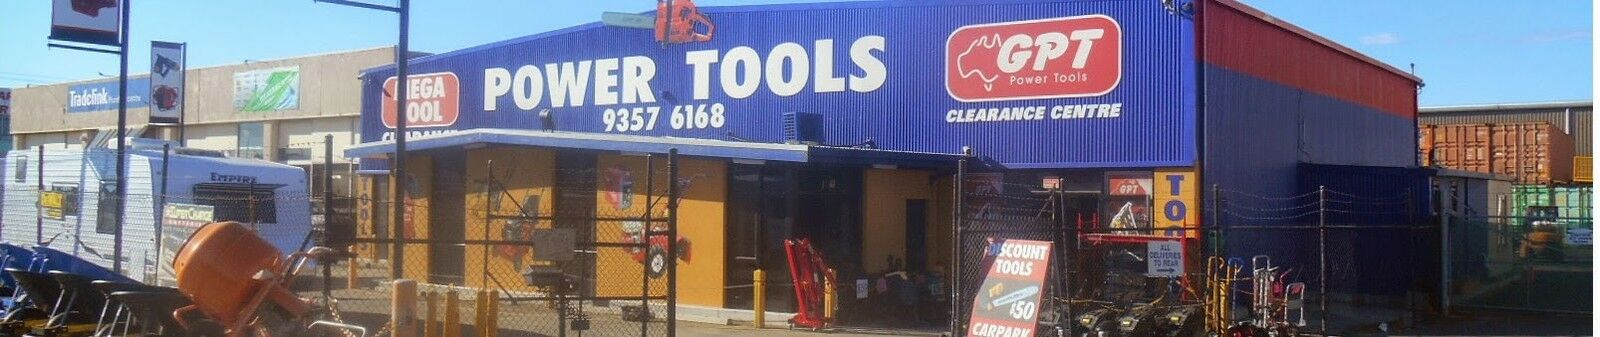 GPT Power Tools